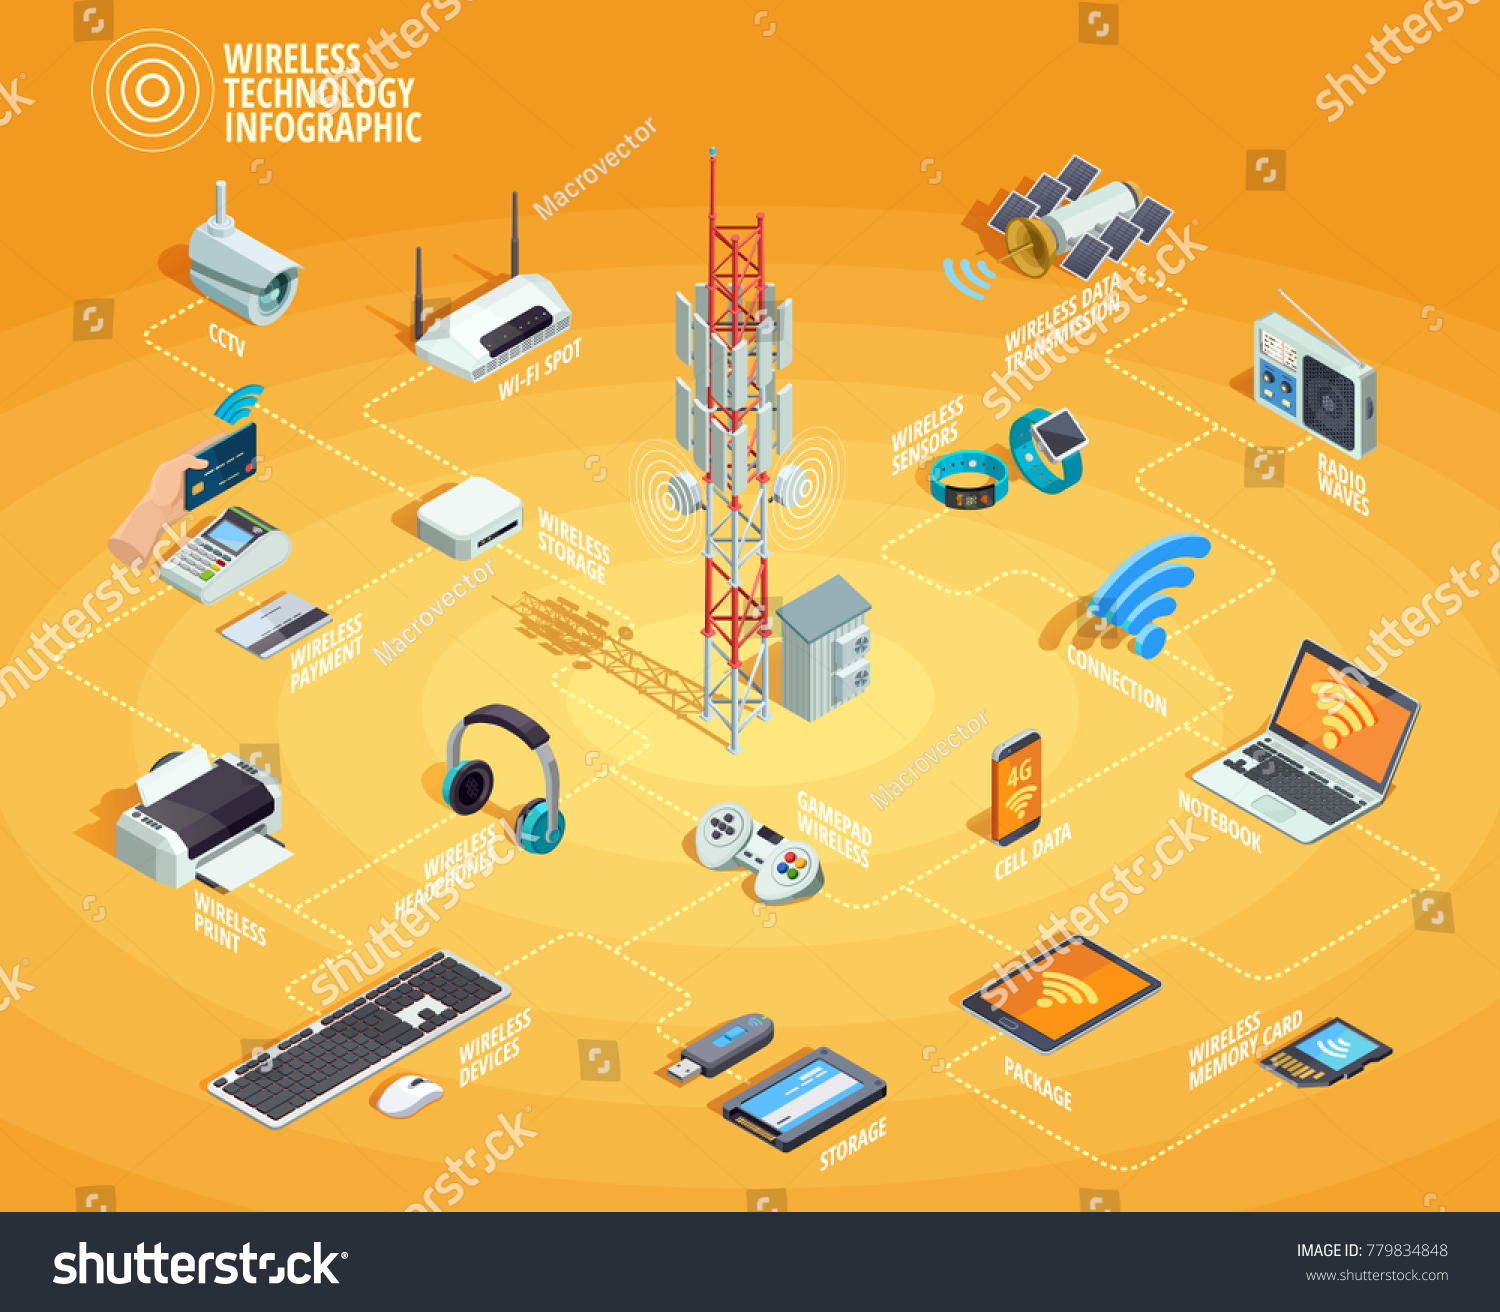 Wireless Technology Electronic Devices Internet Access Stock Set Up Printer Diagram And Connection Infographic Isometric Flowchart Poster With Smartphone Router